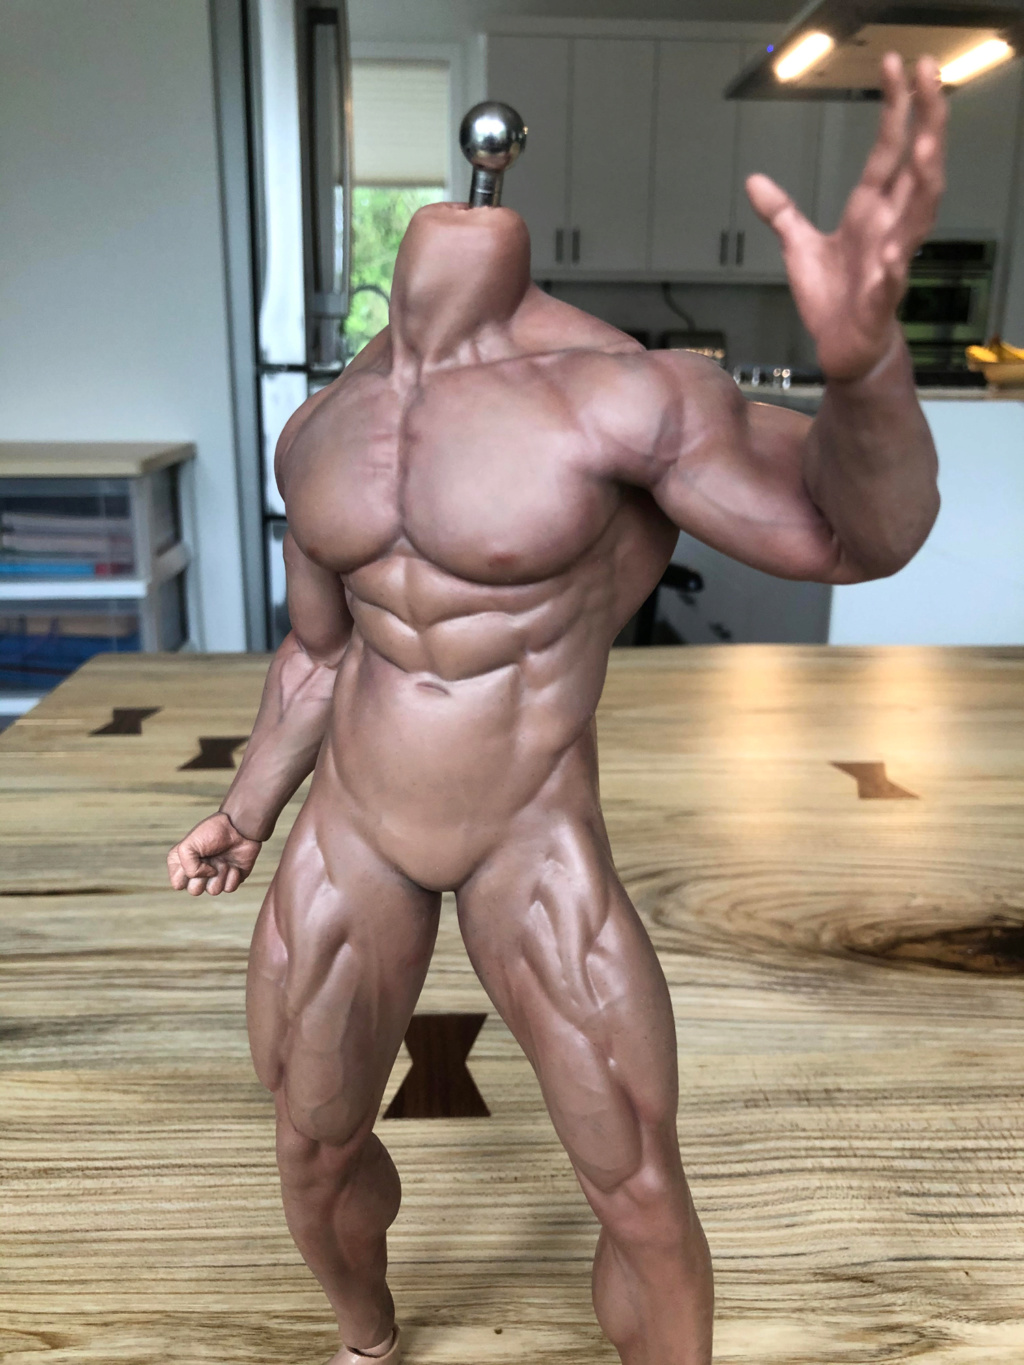 Painting seamless bodies (updated June 2020) - Page 6 Arnold10